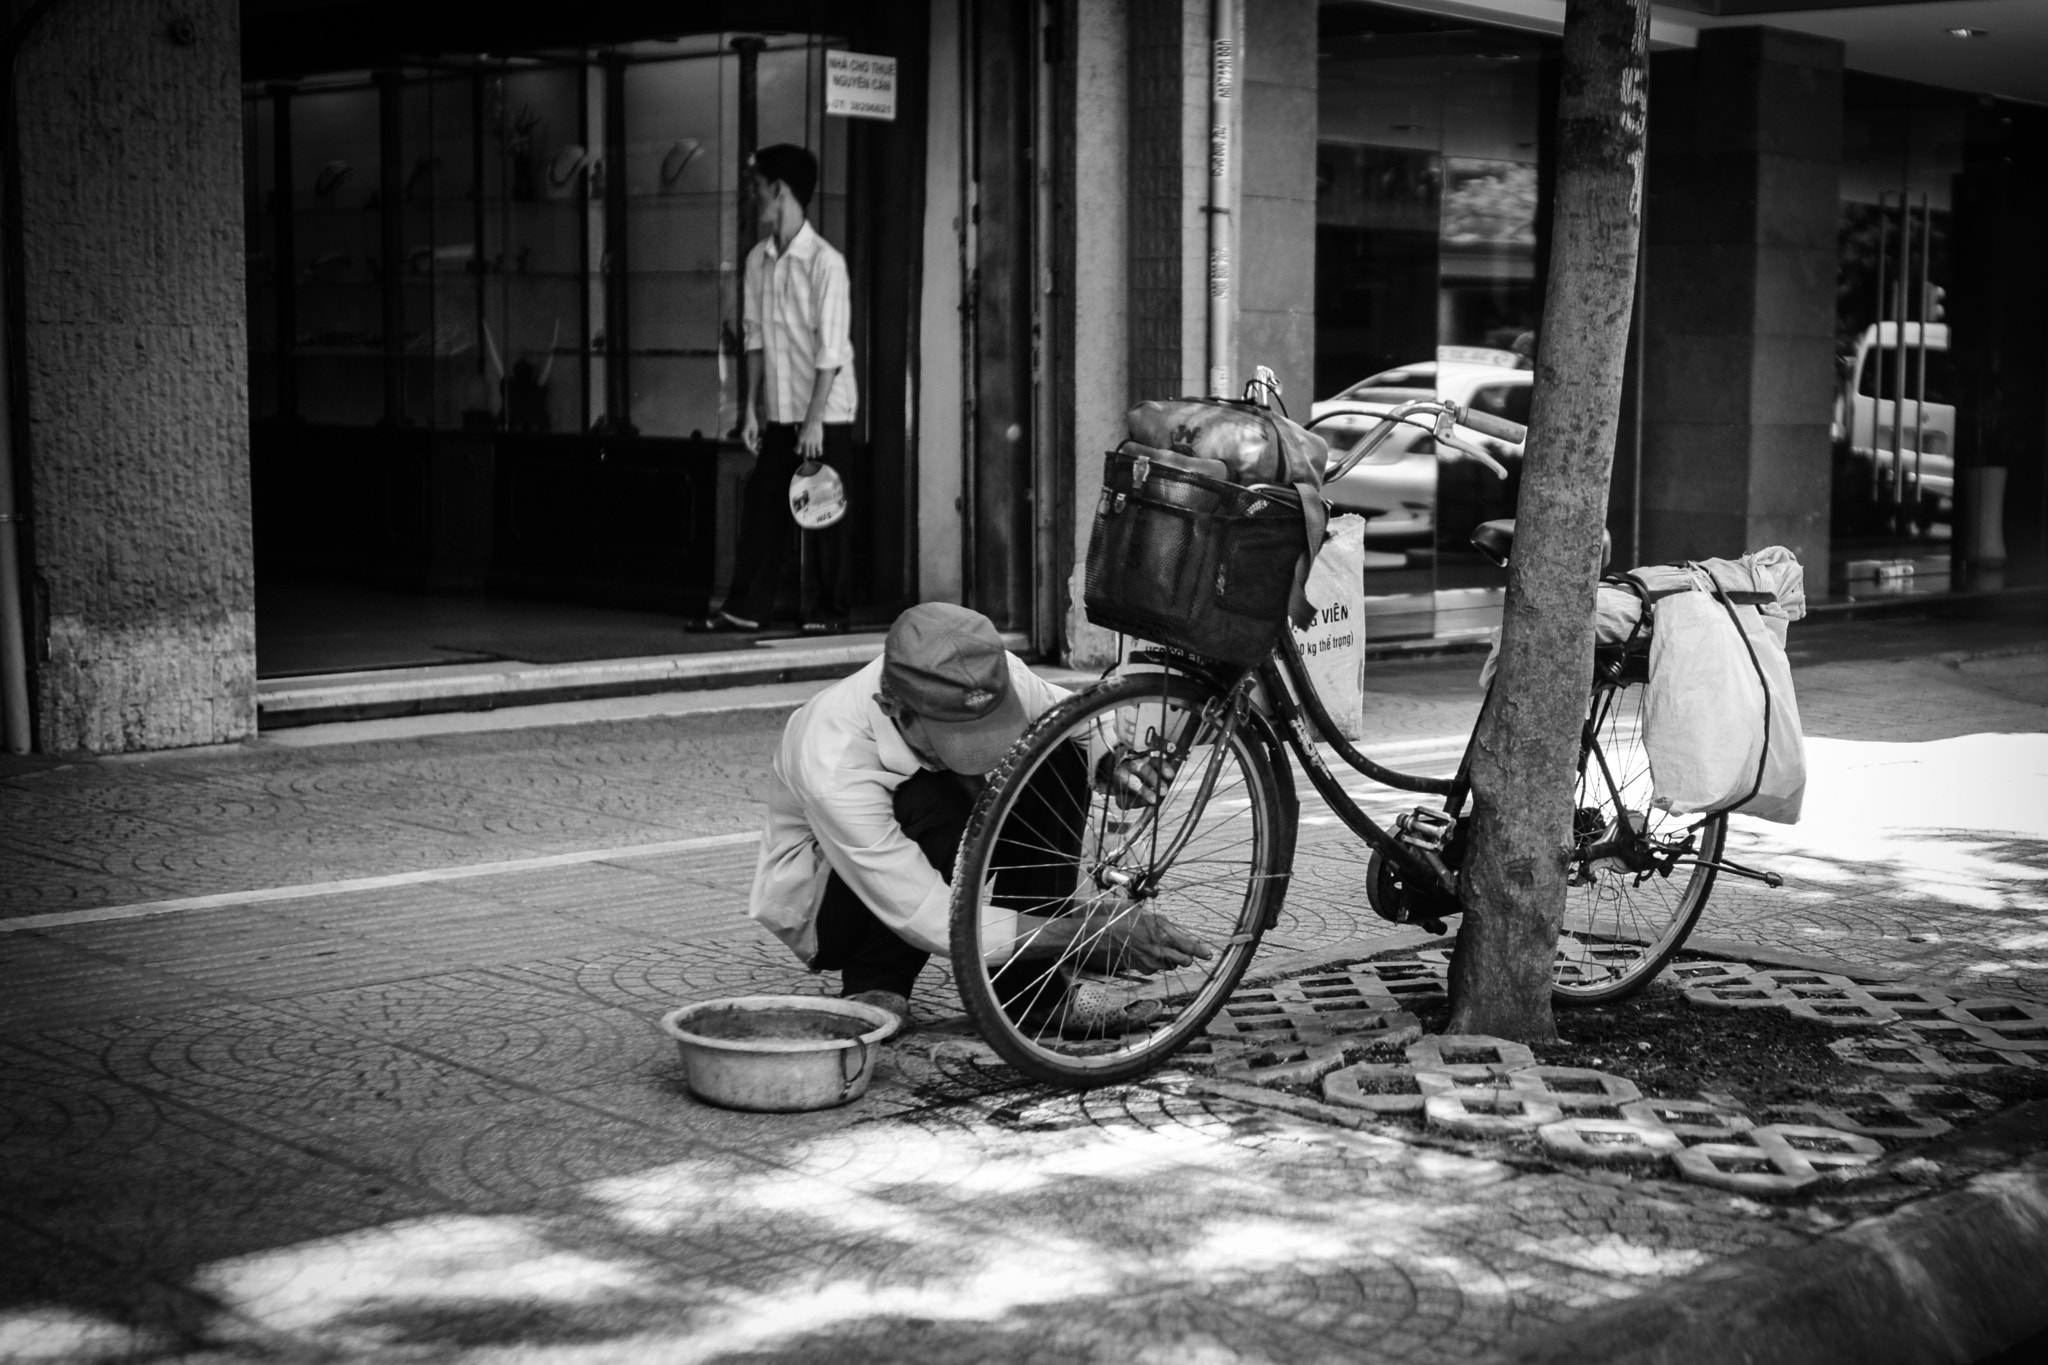 Photograph Bicycle Repair by Tuan Dinh on 500px